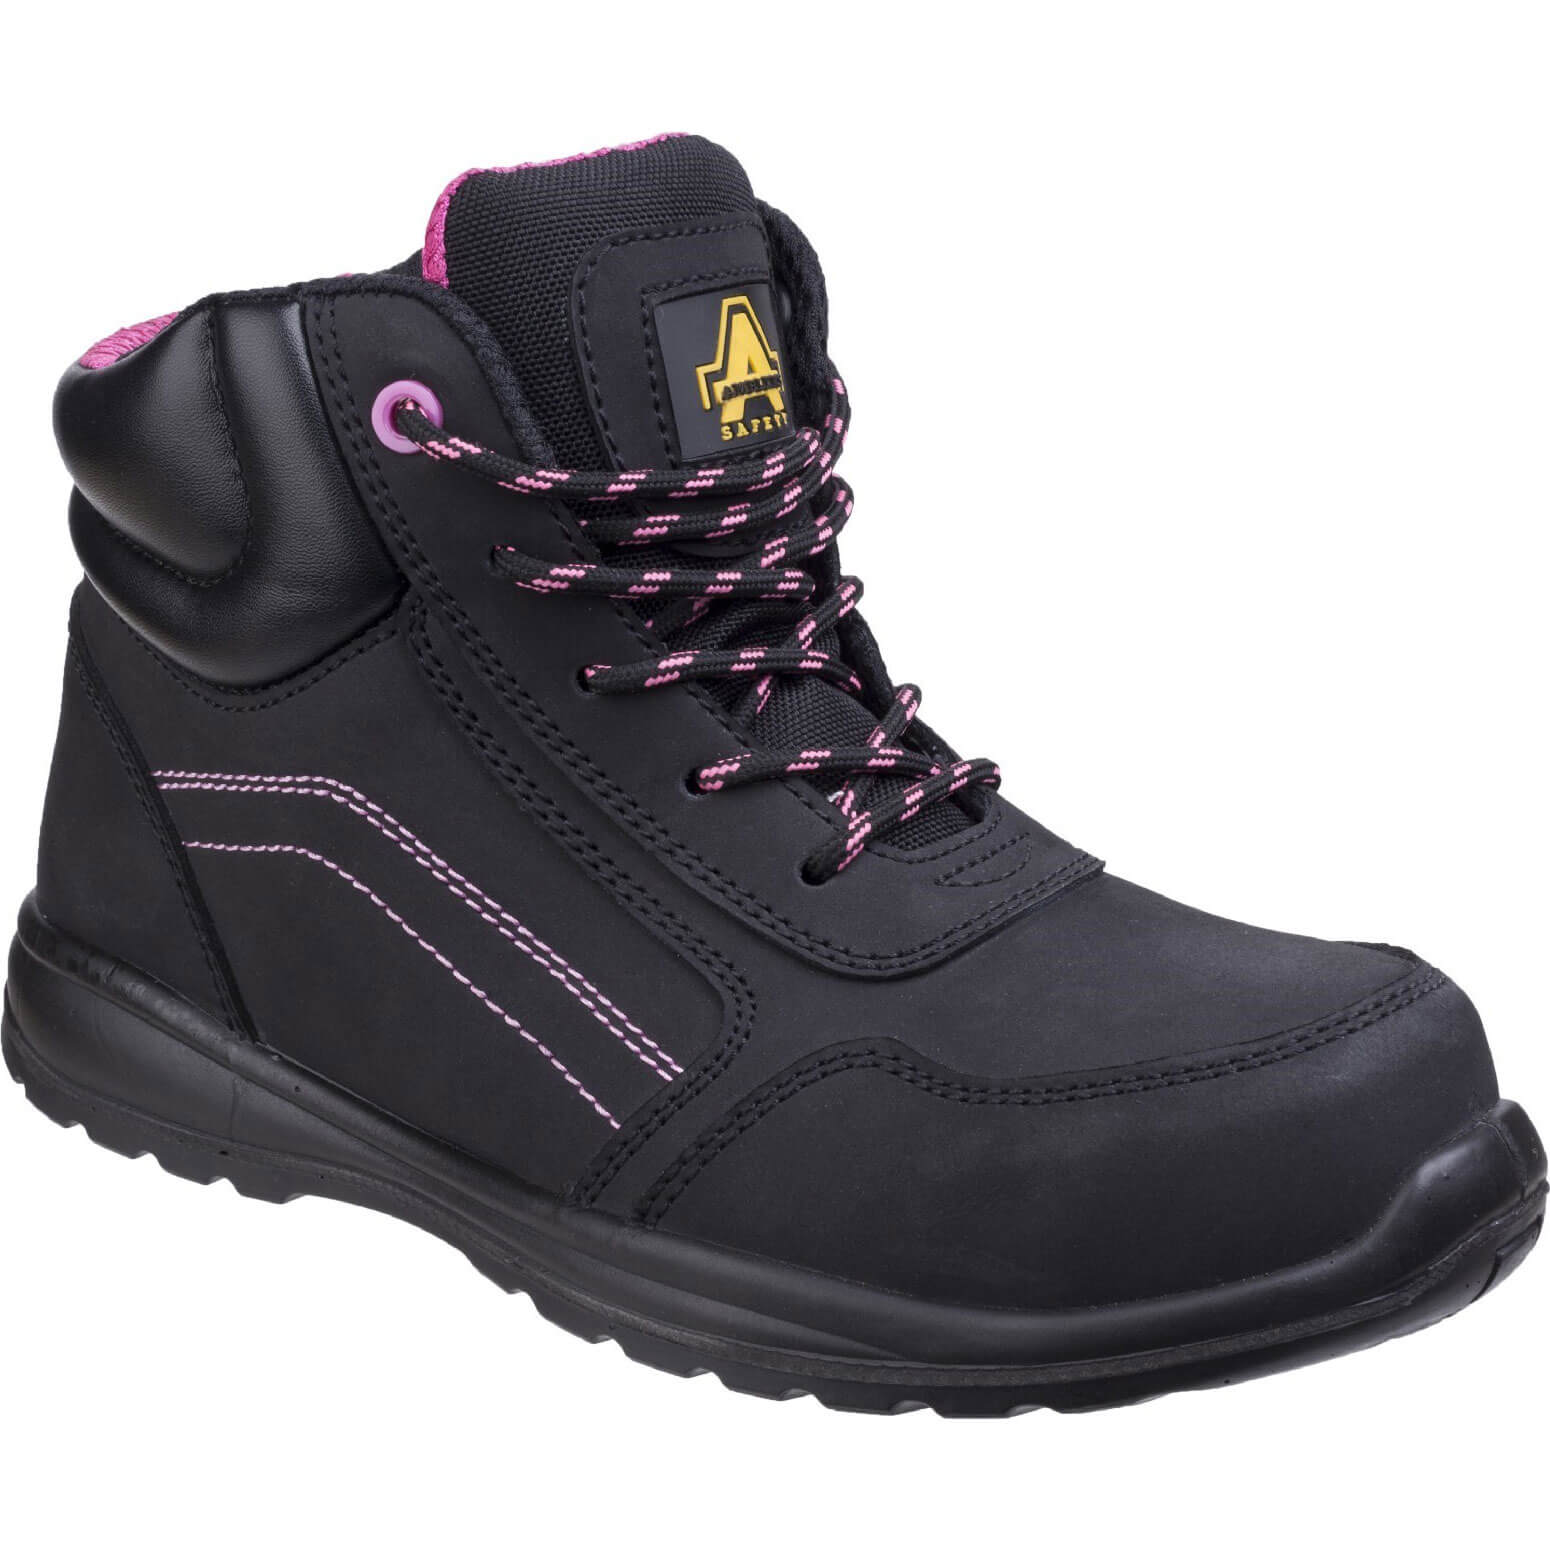 CHEAP Amblers Mens Safety AS601 Lydia Composite Safety Boots Black Size 9 – Men's Footwear